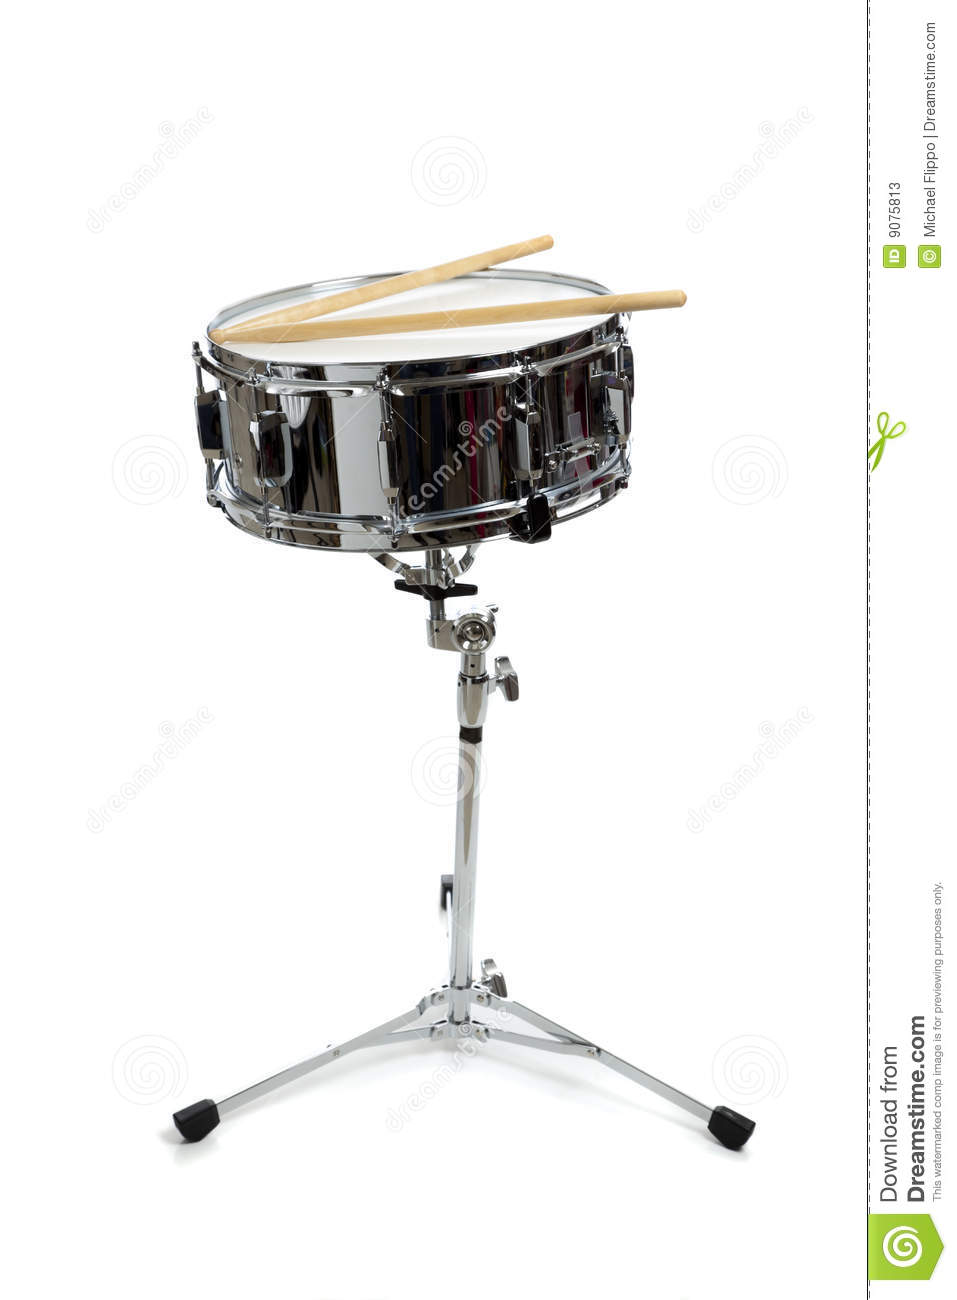 snare drum on stand stock photos